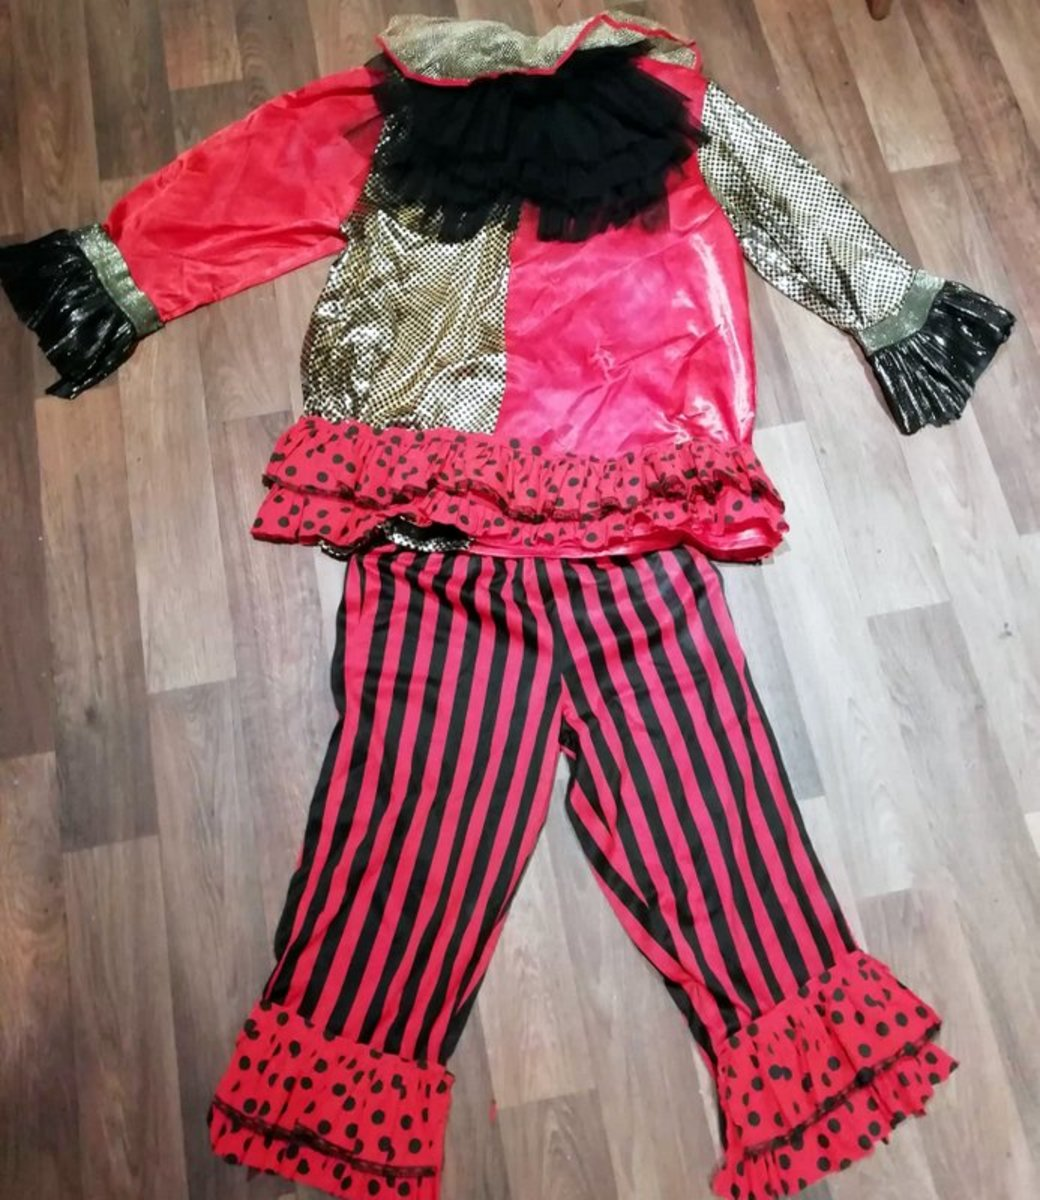 A Clown Outfit